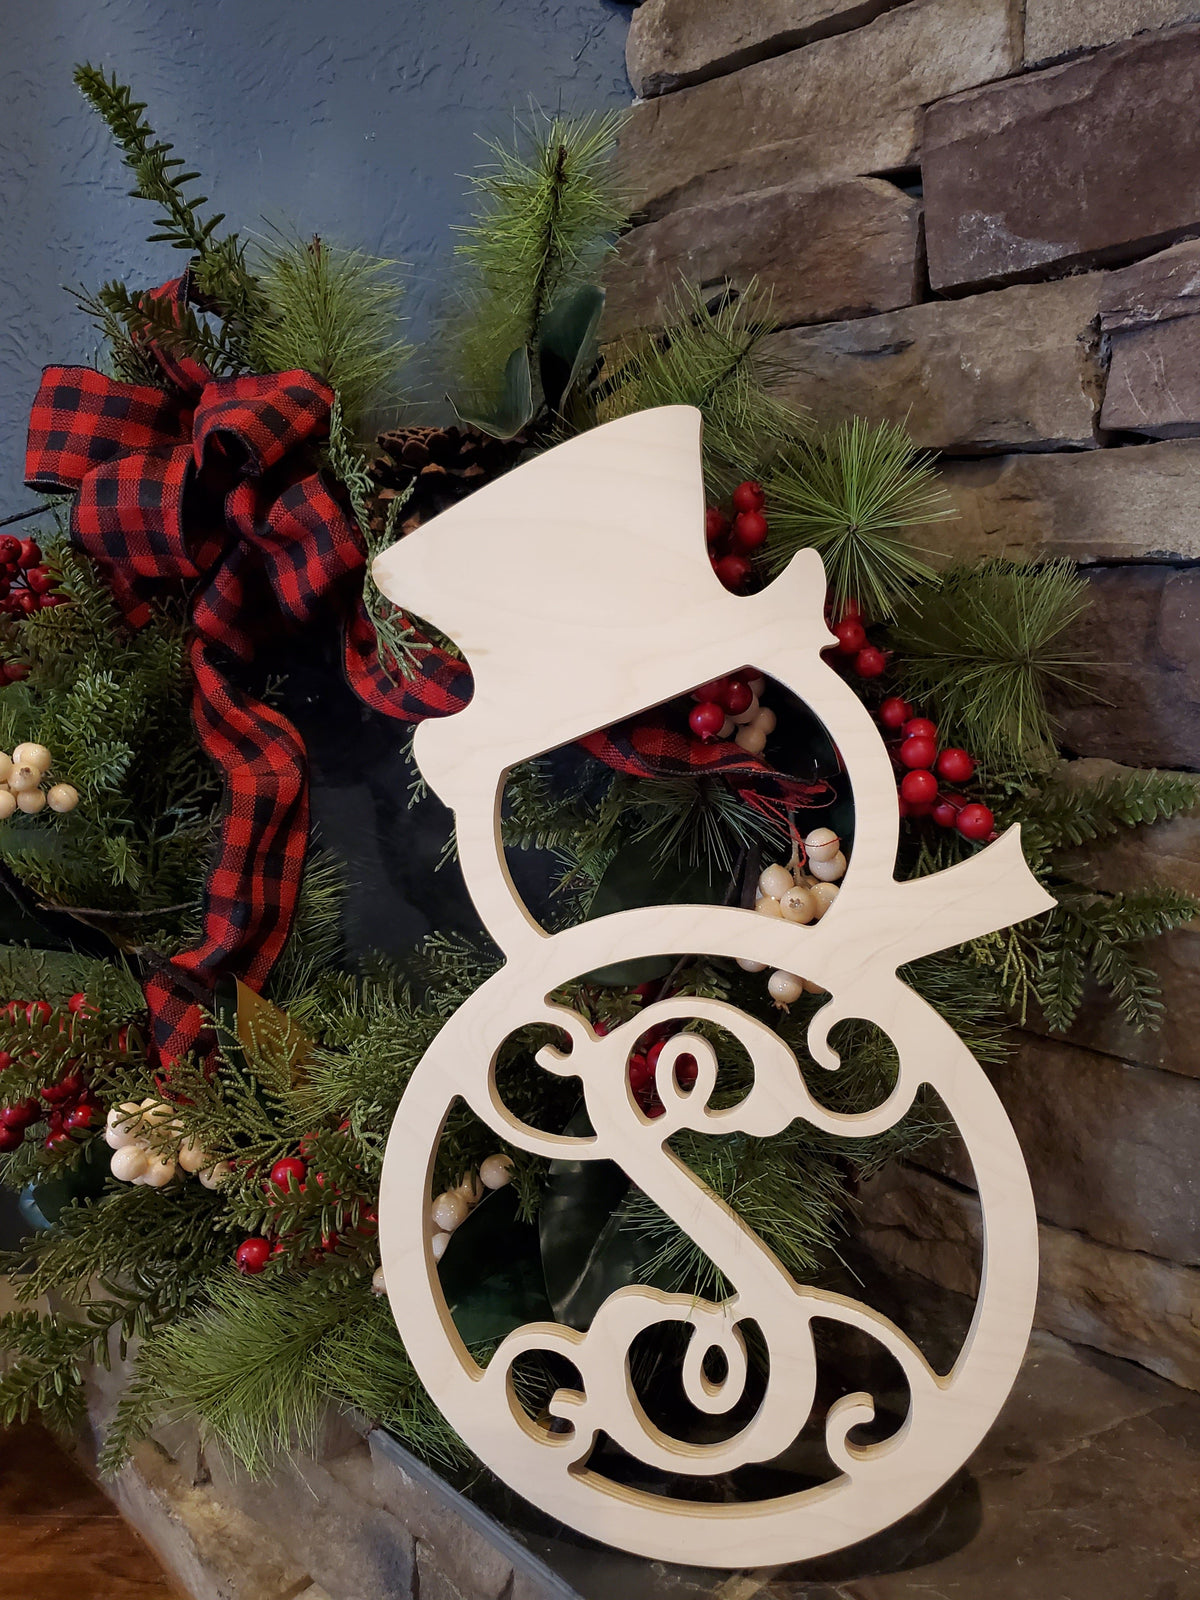 Home Decor - Snowman Monogram Wood Decor